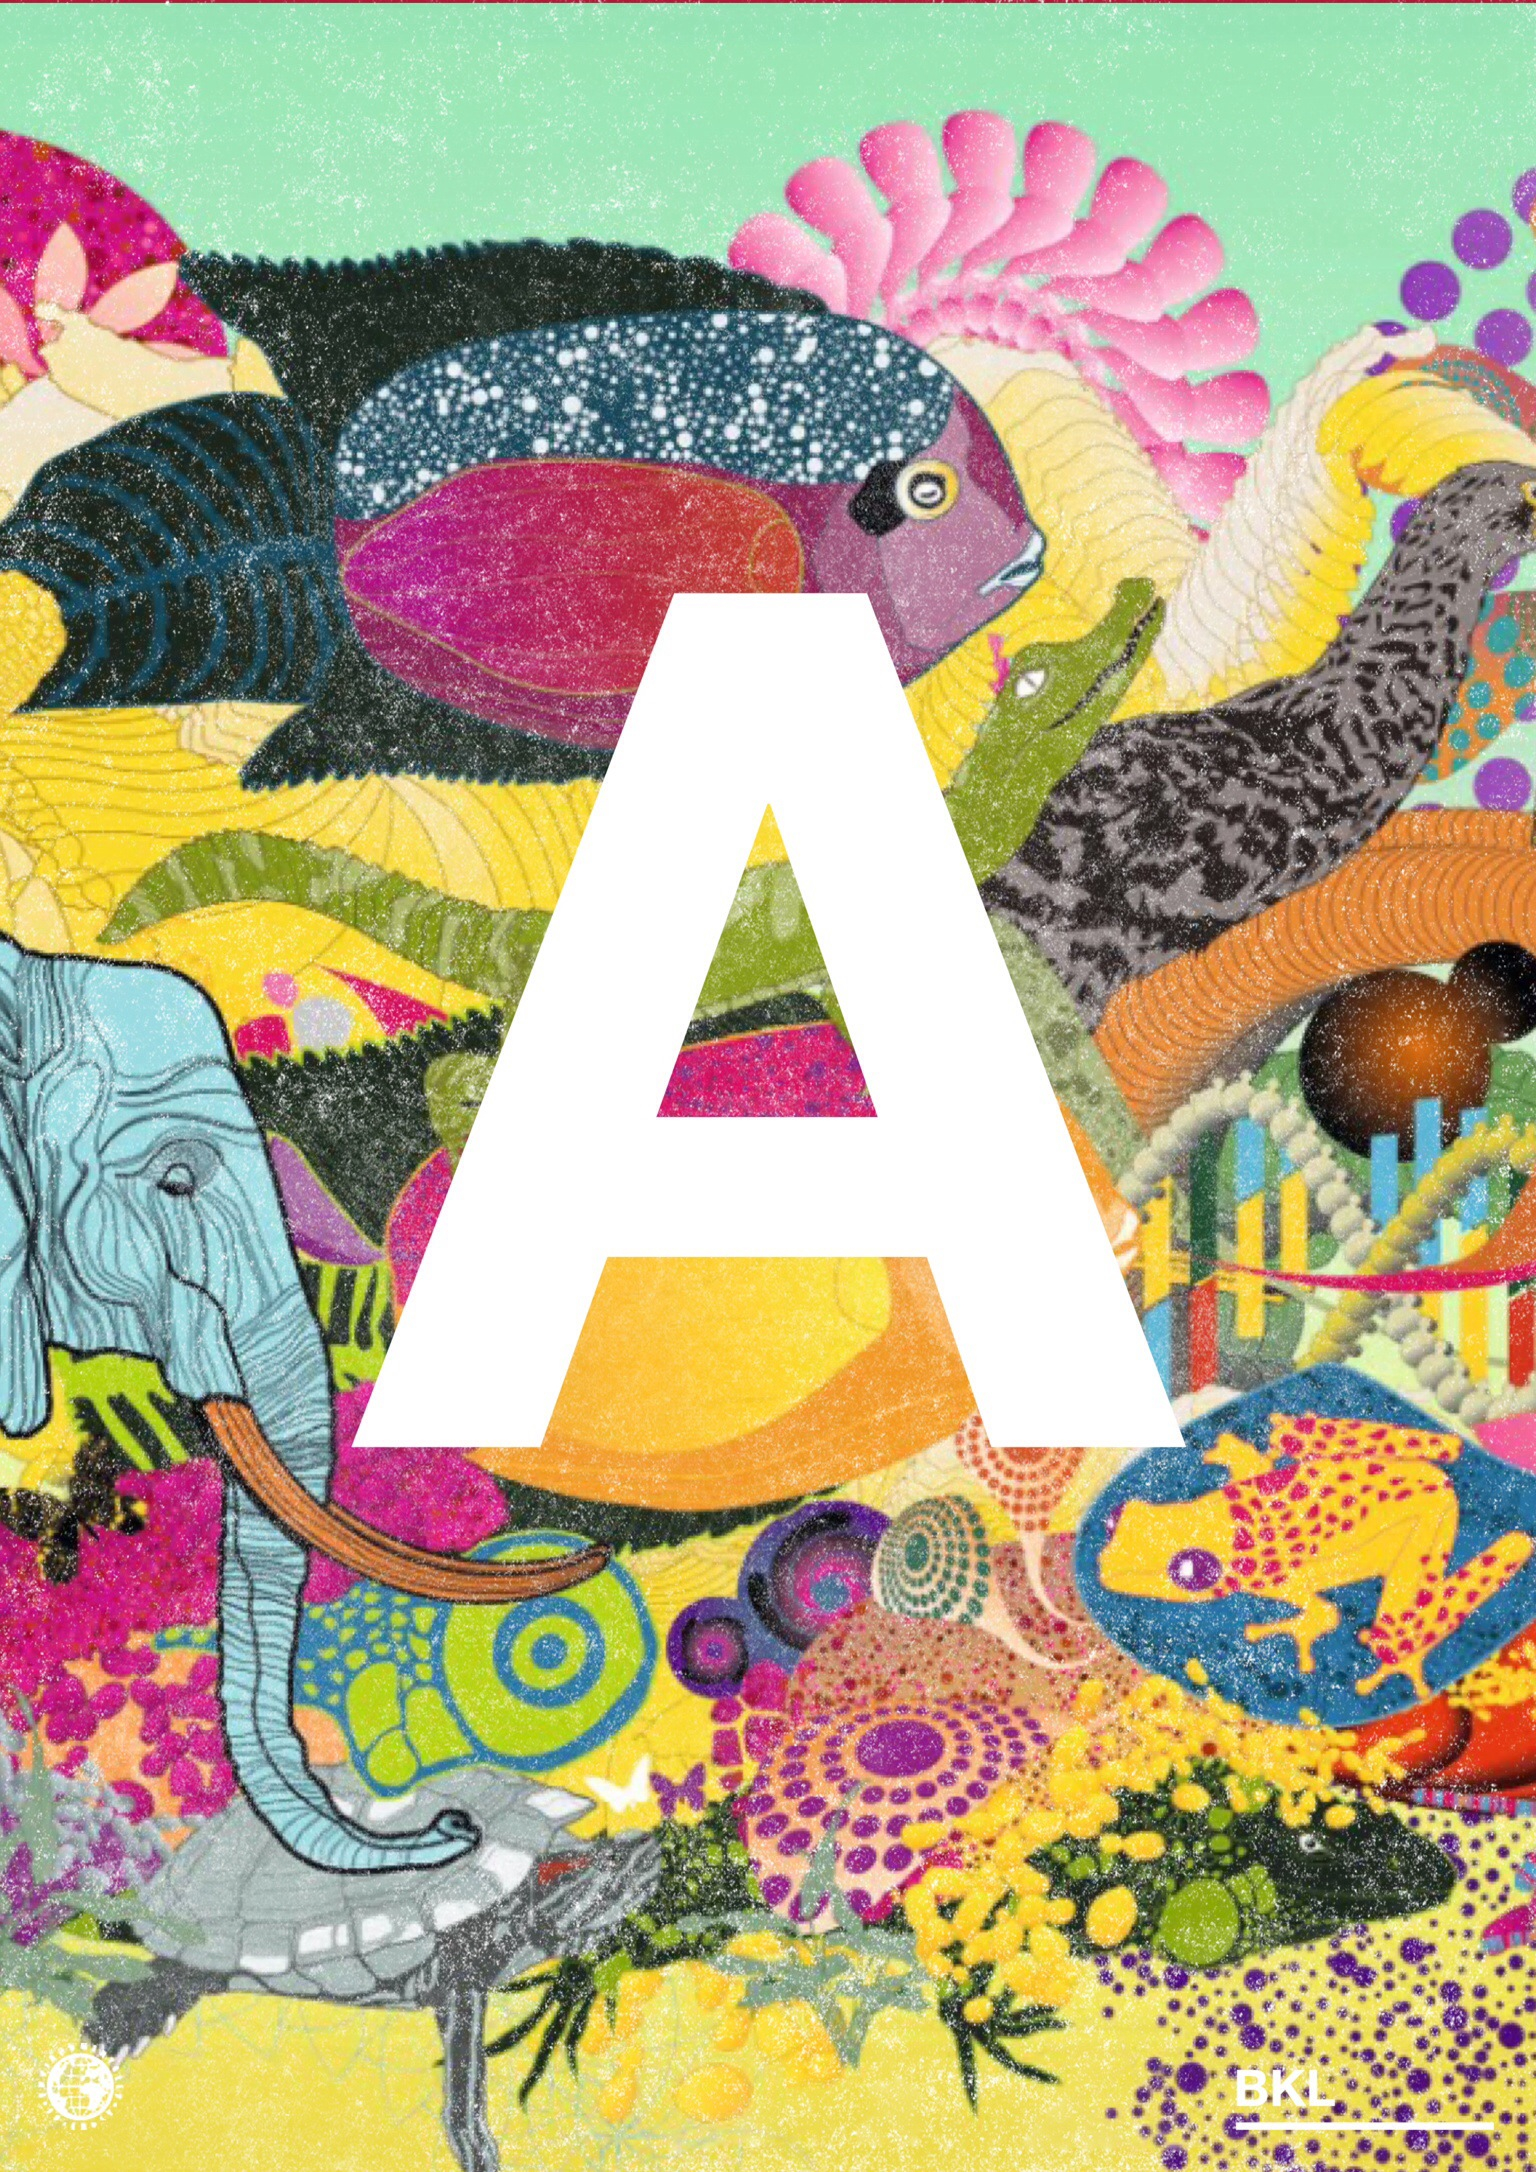 Letter A surrounded by colorful animals